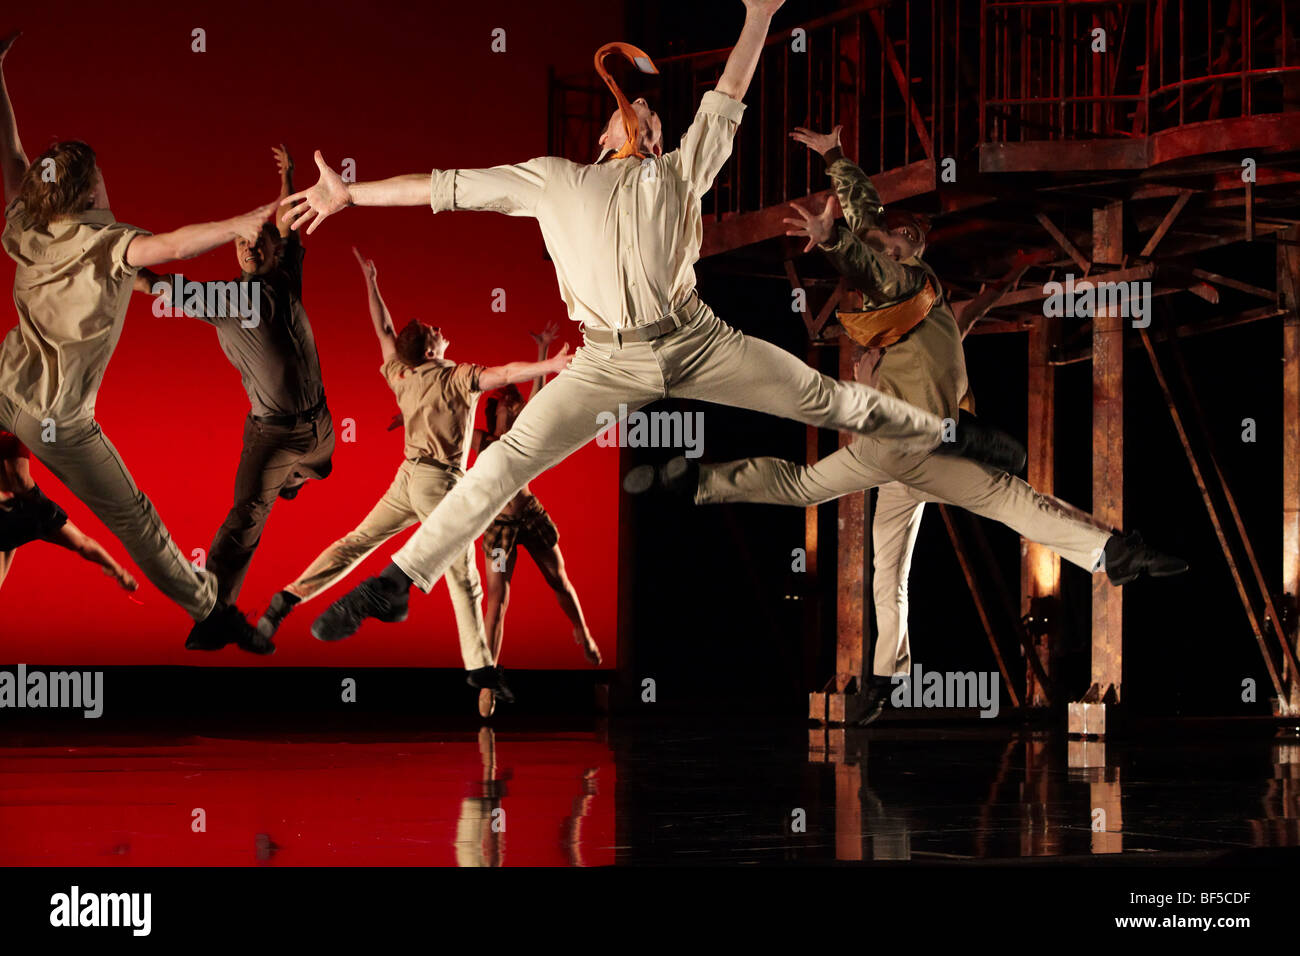 west side story musical by leonard bernstein 50th anniversary world stock photo royalty free. Black Bedroom Furniture Sets. Home Design Ideas